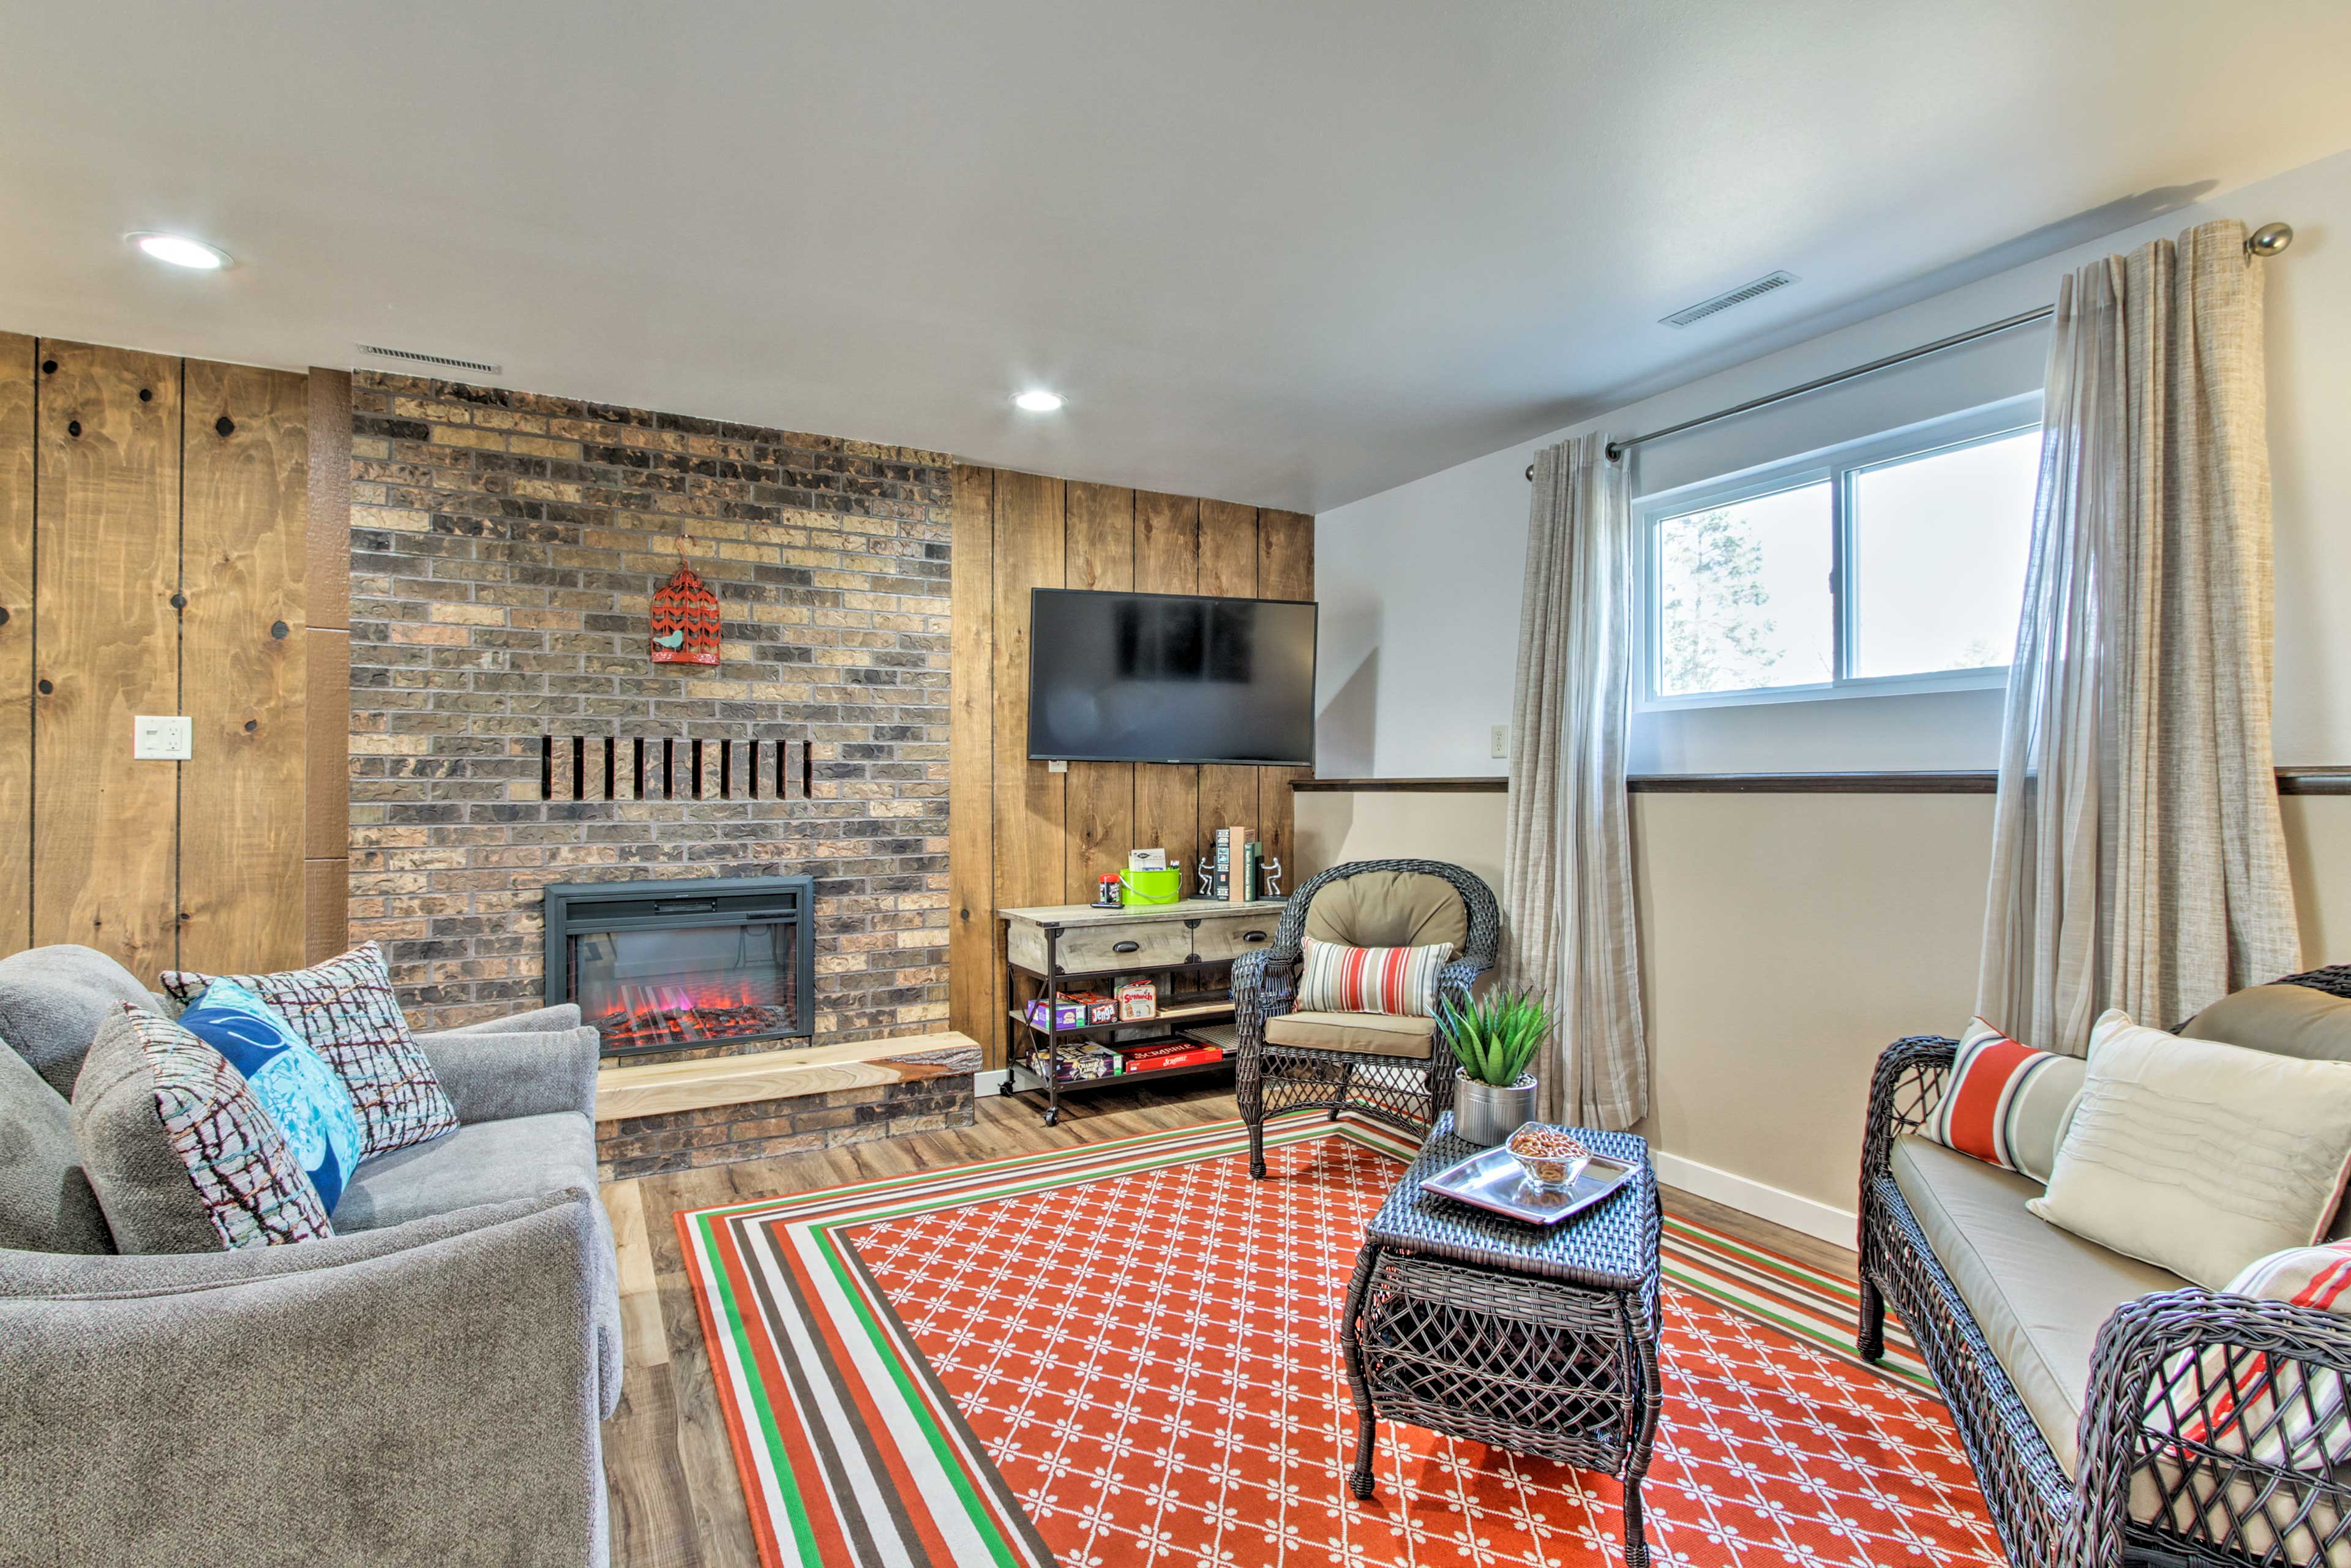 This 3-bedroom, 2-bath vacation rental boasts 2 fully furnished living rooms.